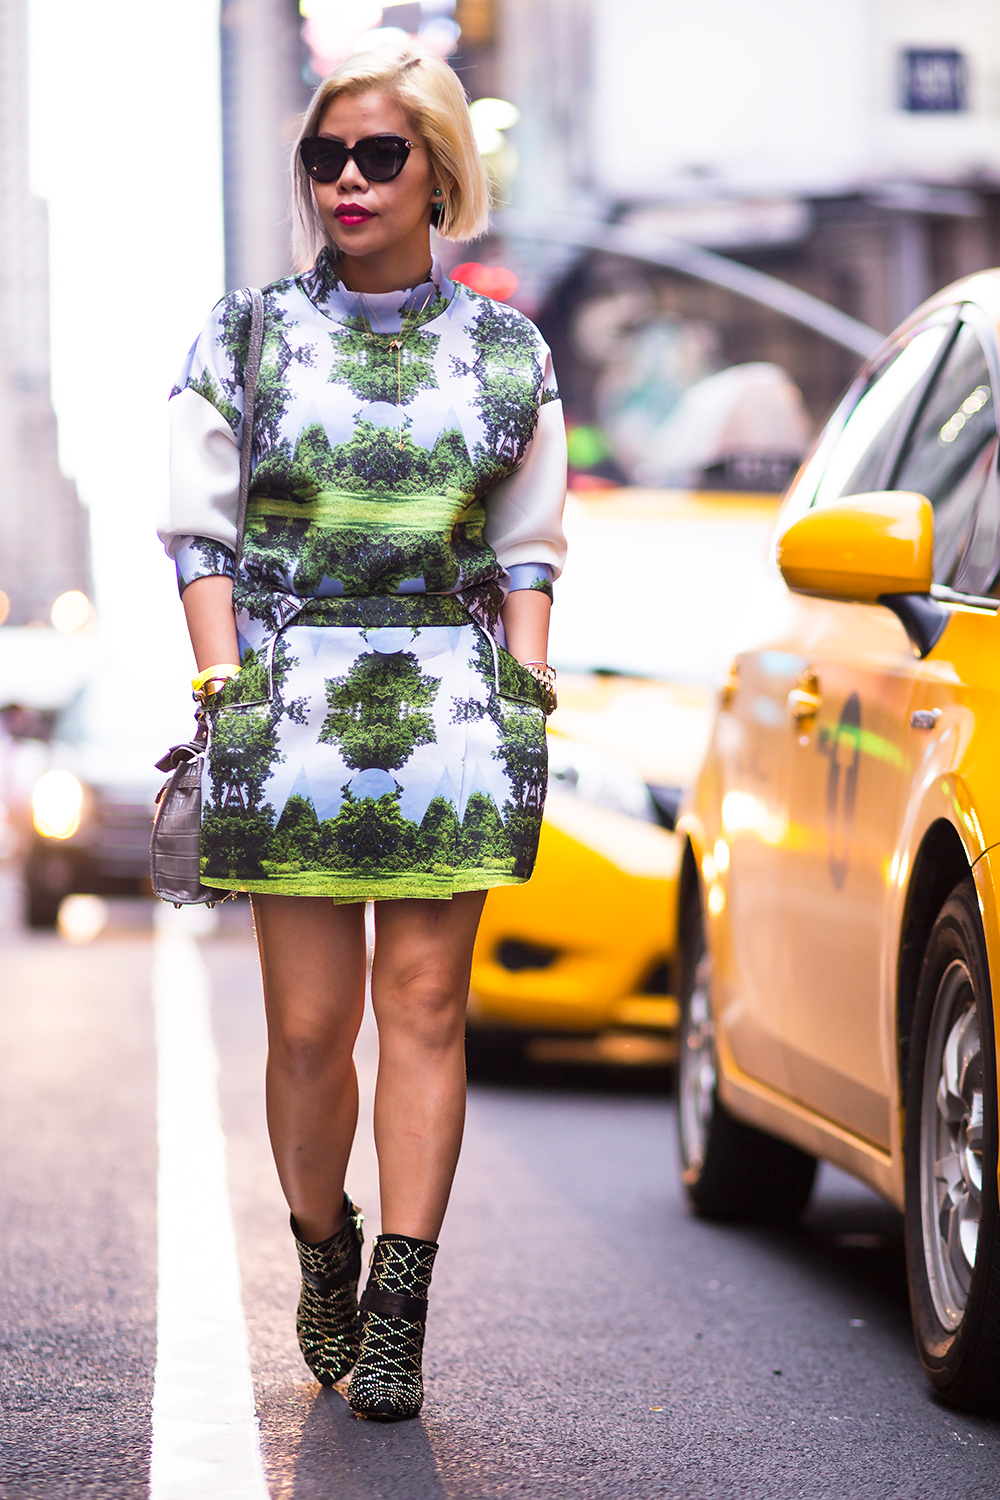 CrystalPhuong- New York Fashion Week 2015- Day 3 Streetstyle